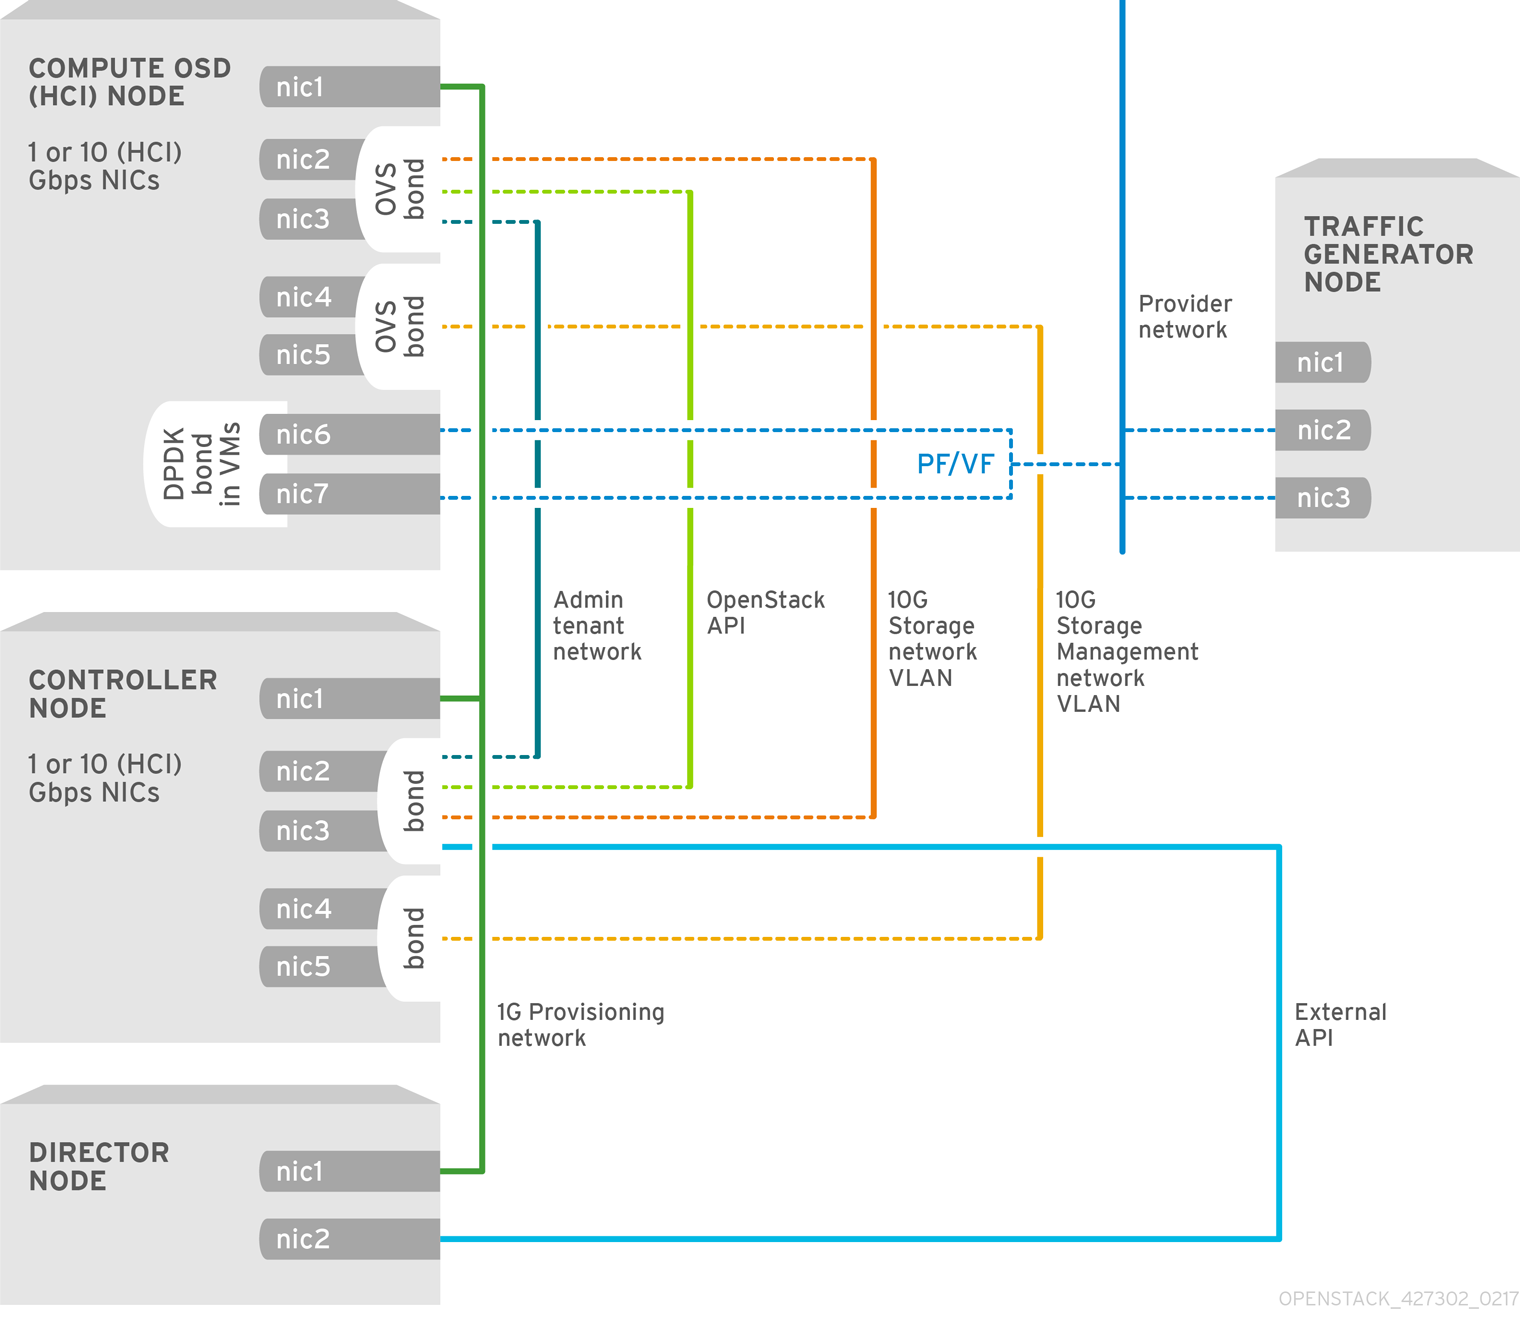 NFV SR-IOV Topology with HCI